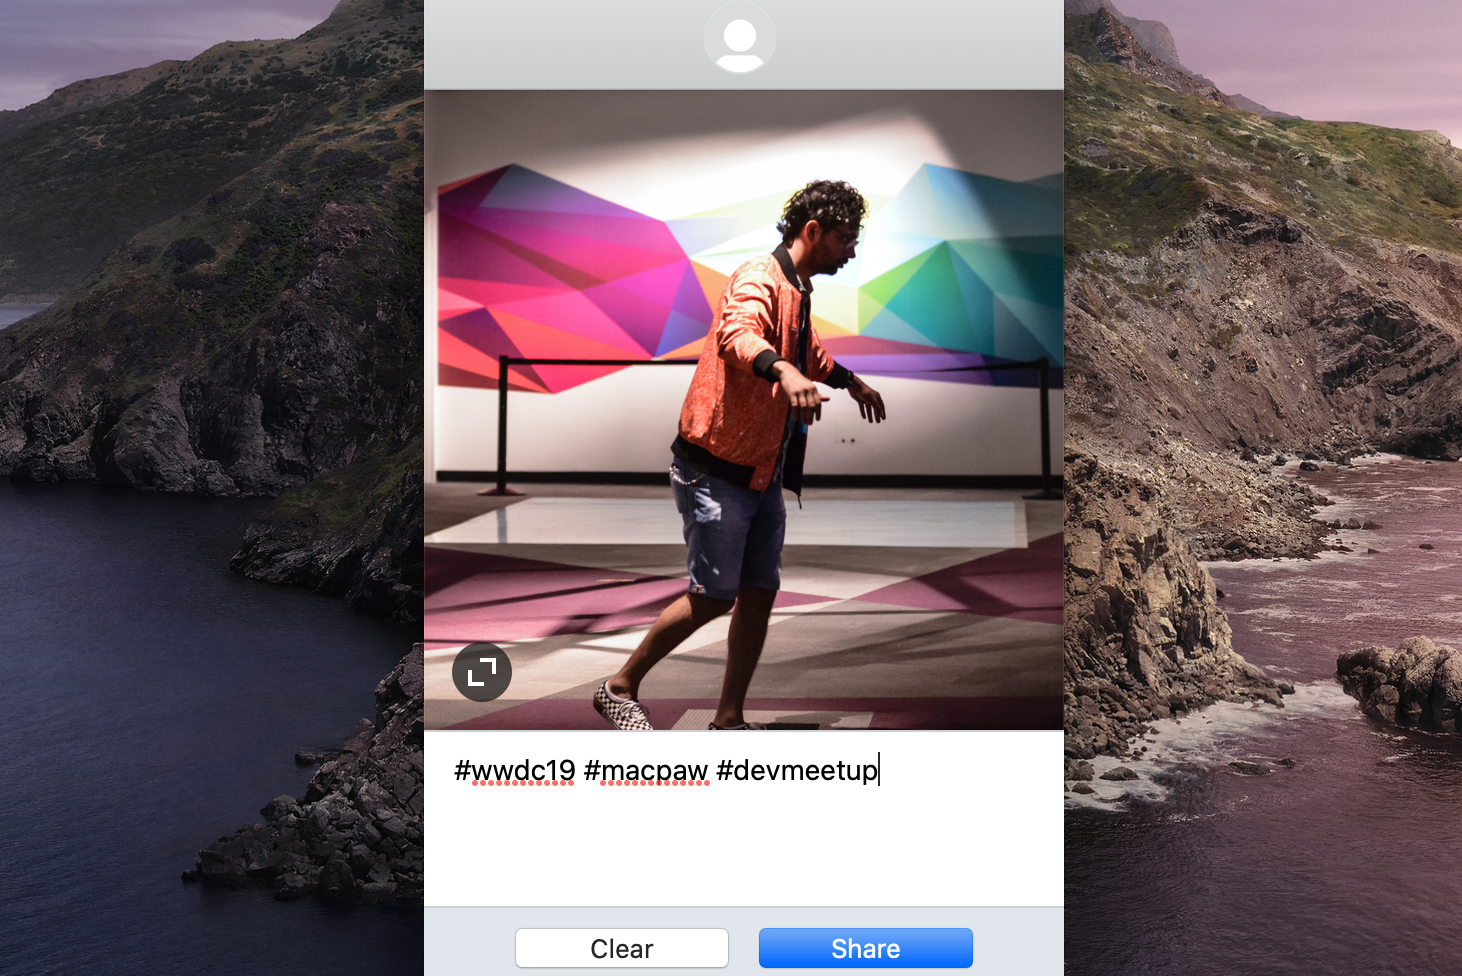 How to post on Instagram from Mac using Uplet, an Instagram app for Mac